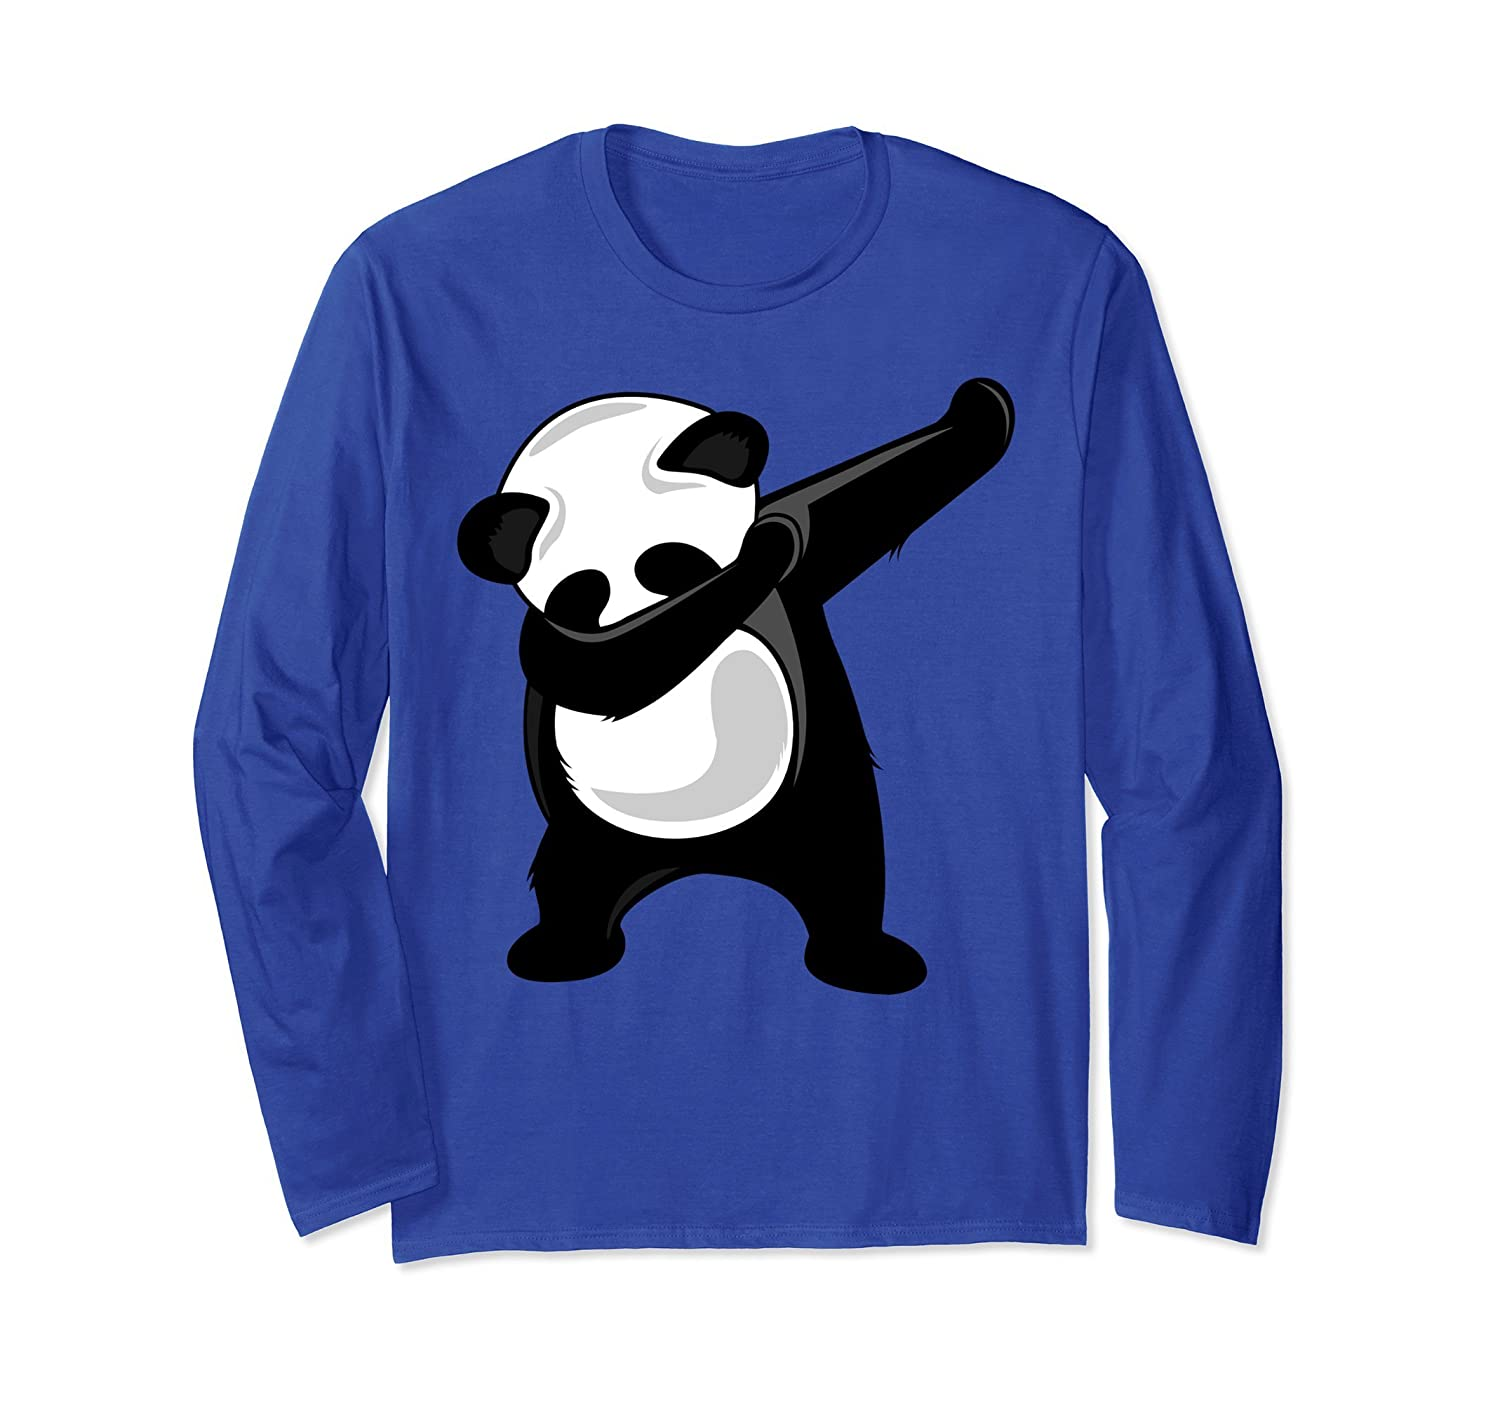 Dabbing Panda Shirt - Panda Bear Dab Dance Long Sleeve Shirt-alottee gift